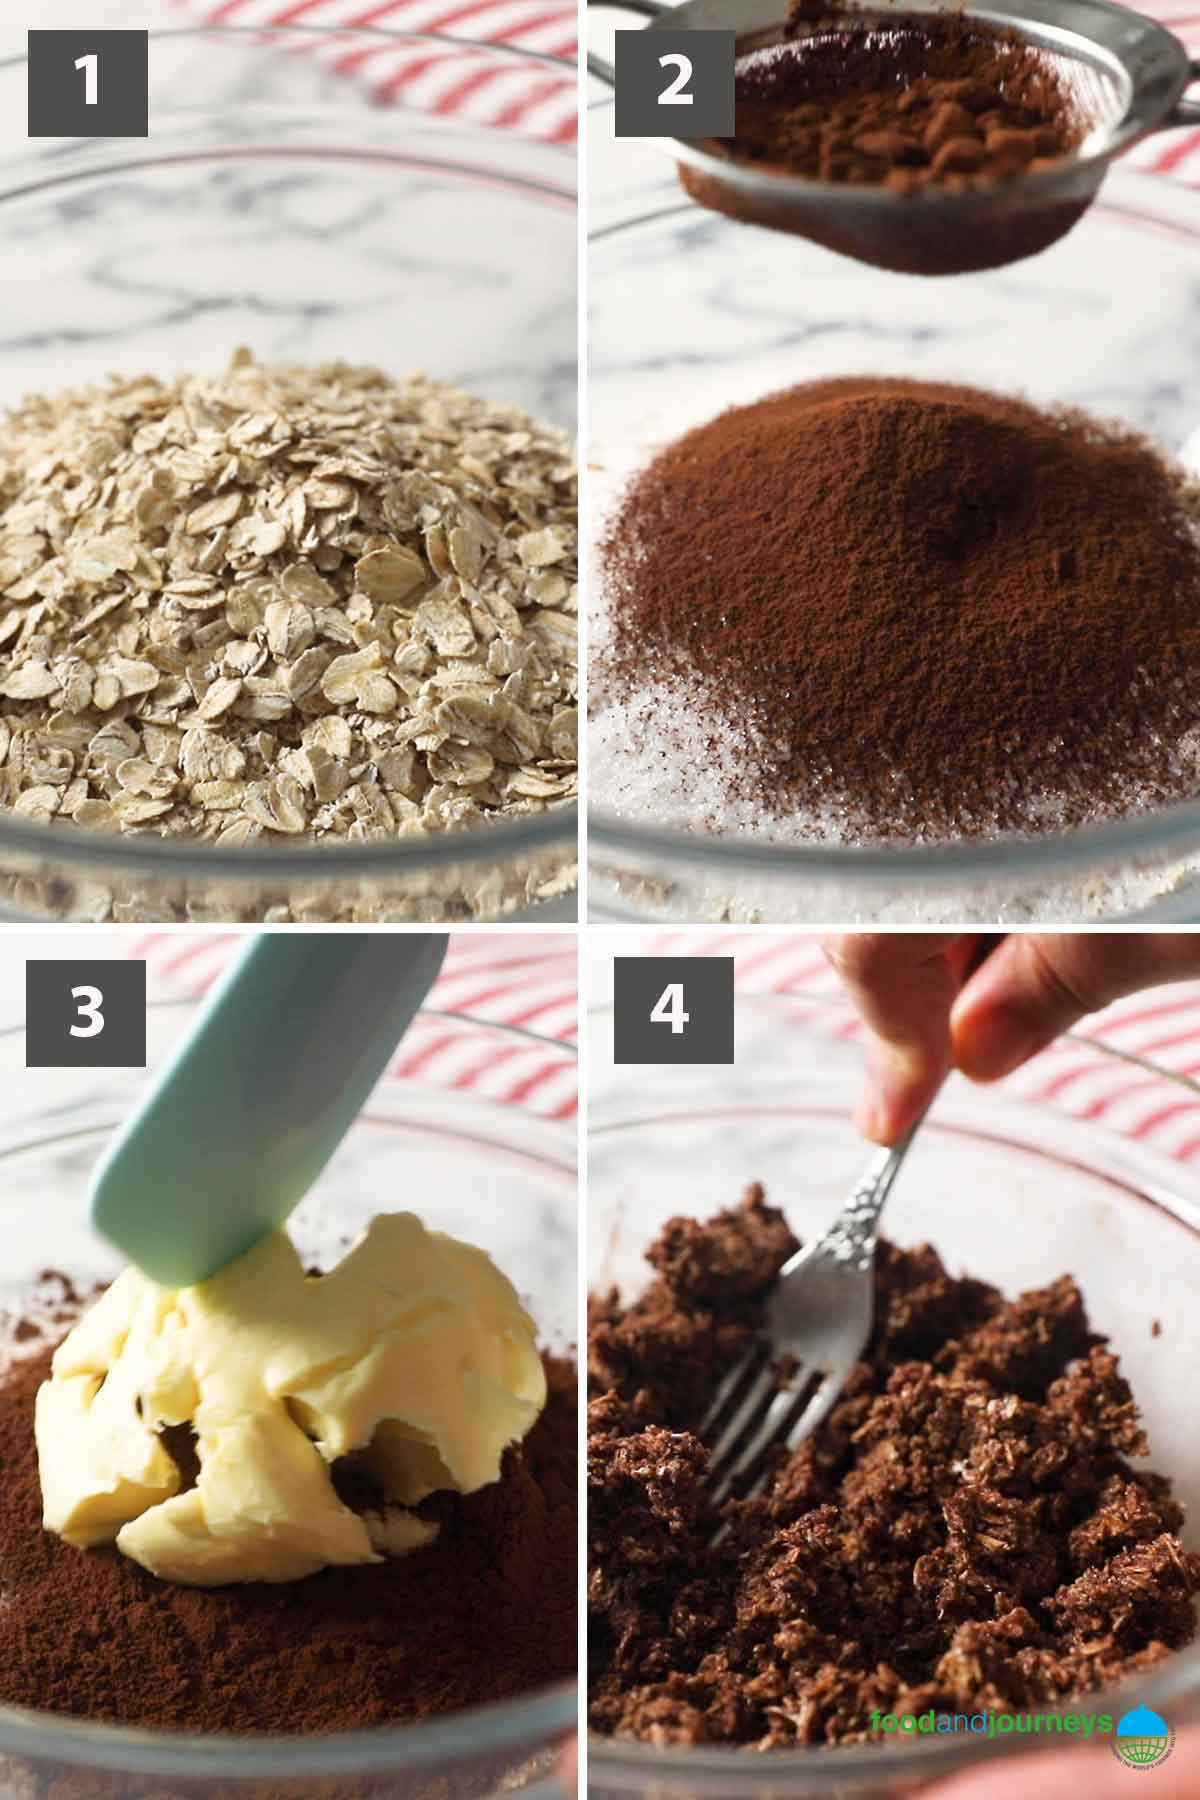 First part of a collage of images showing the step by step process on how to make no-bake chocolate balls.